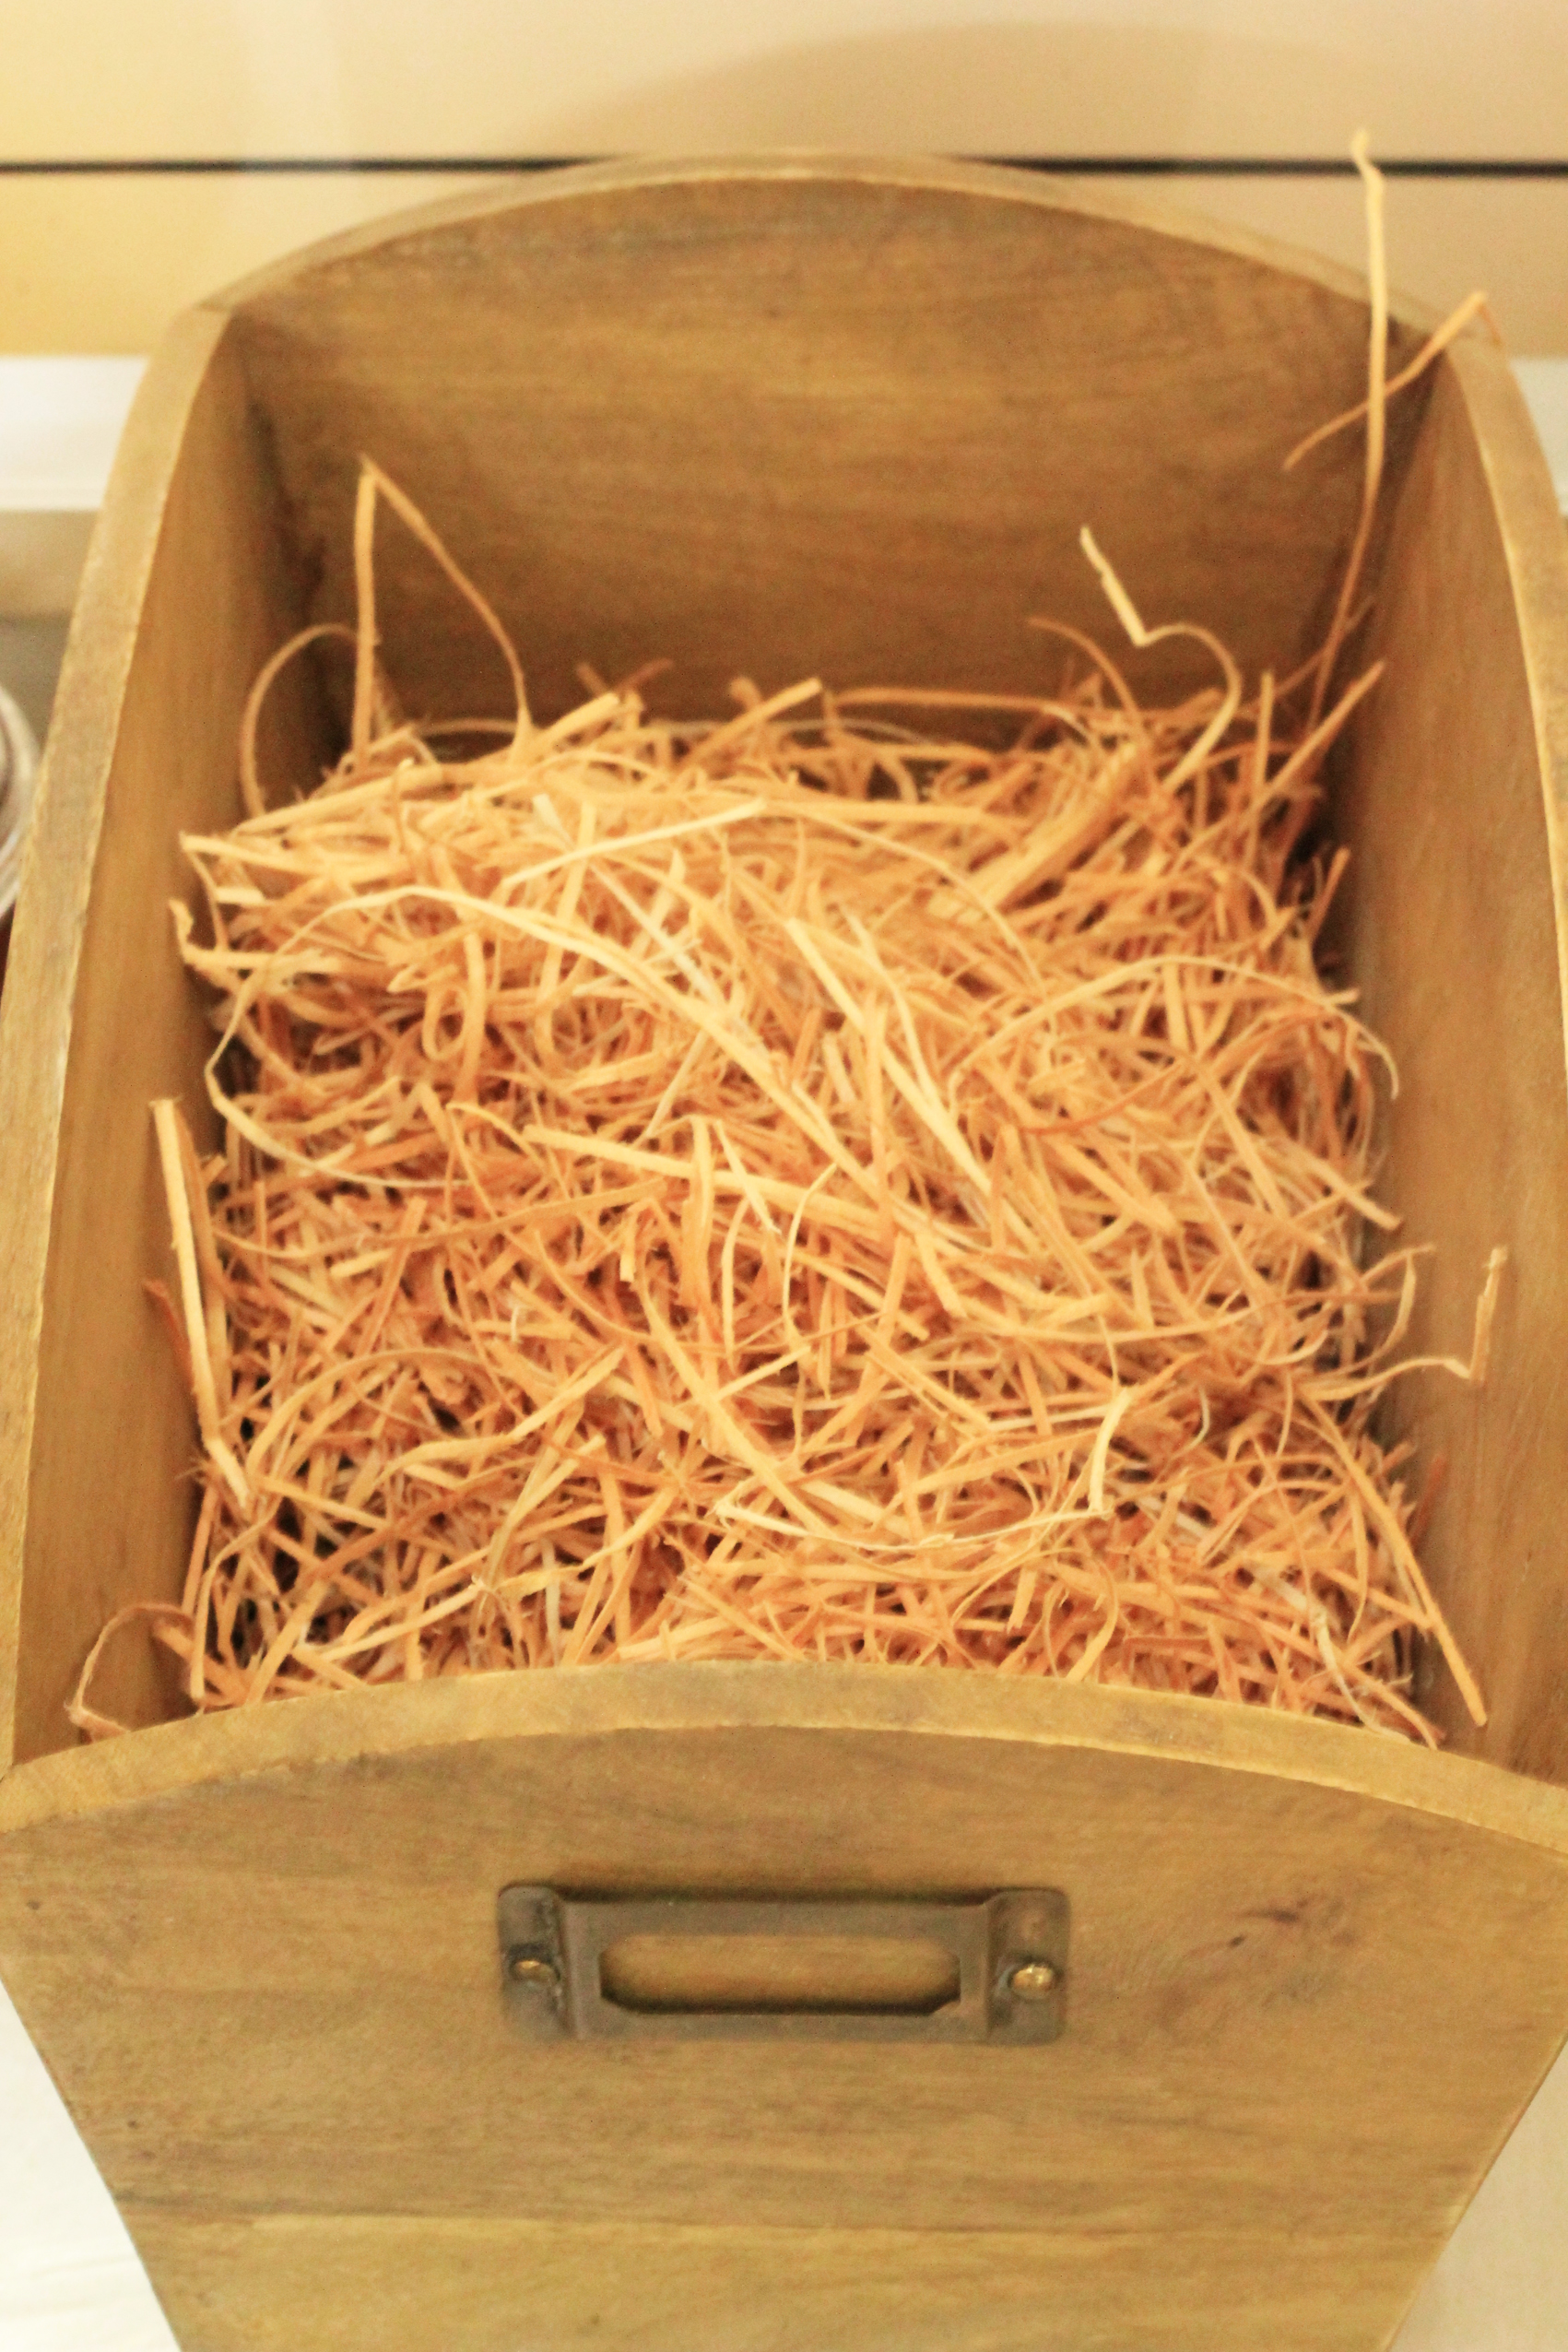 sarson's larch shavings